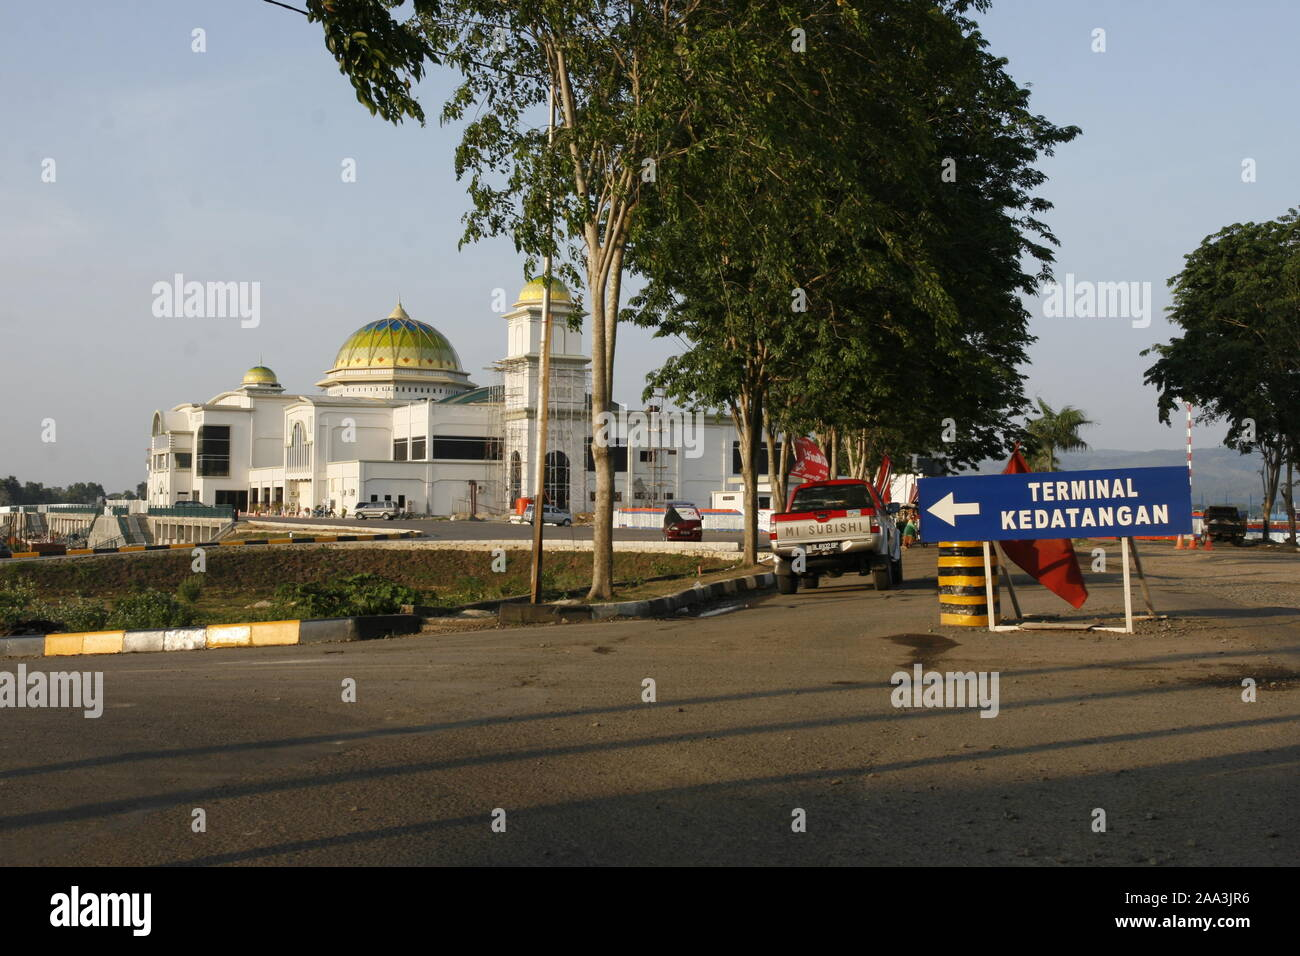 Aceh Airport Construction High Resolution Stock Photography And Images Alamy